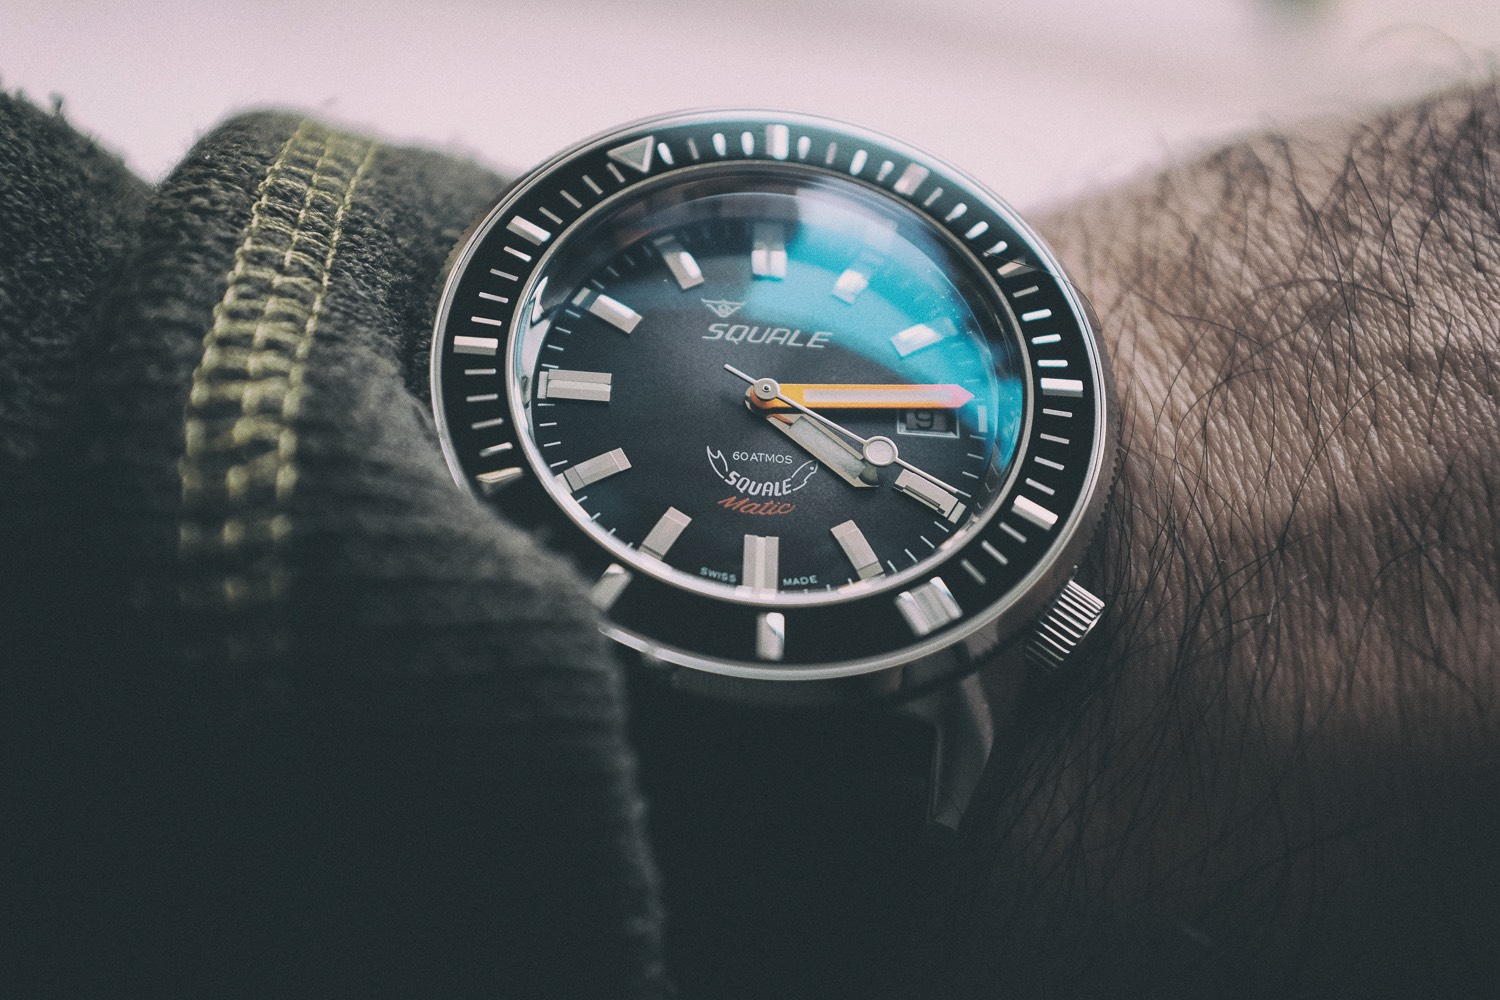 price watch watches review squale dive squalematic atmos monochrome